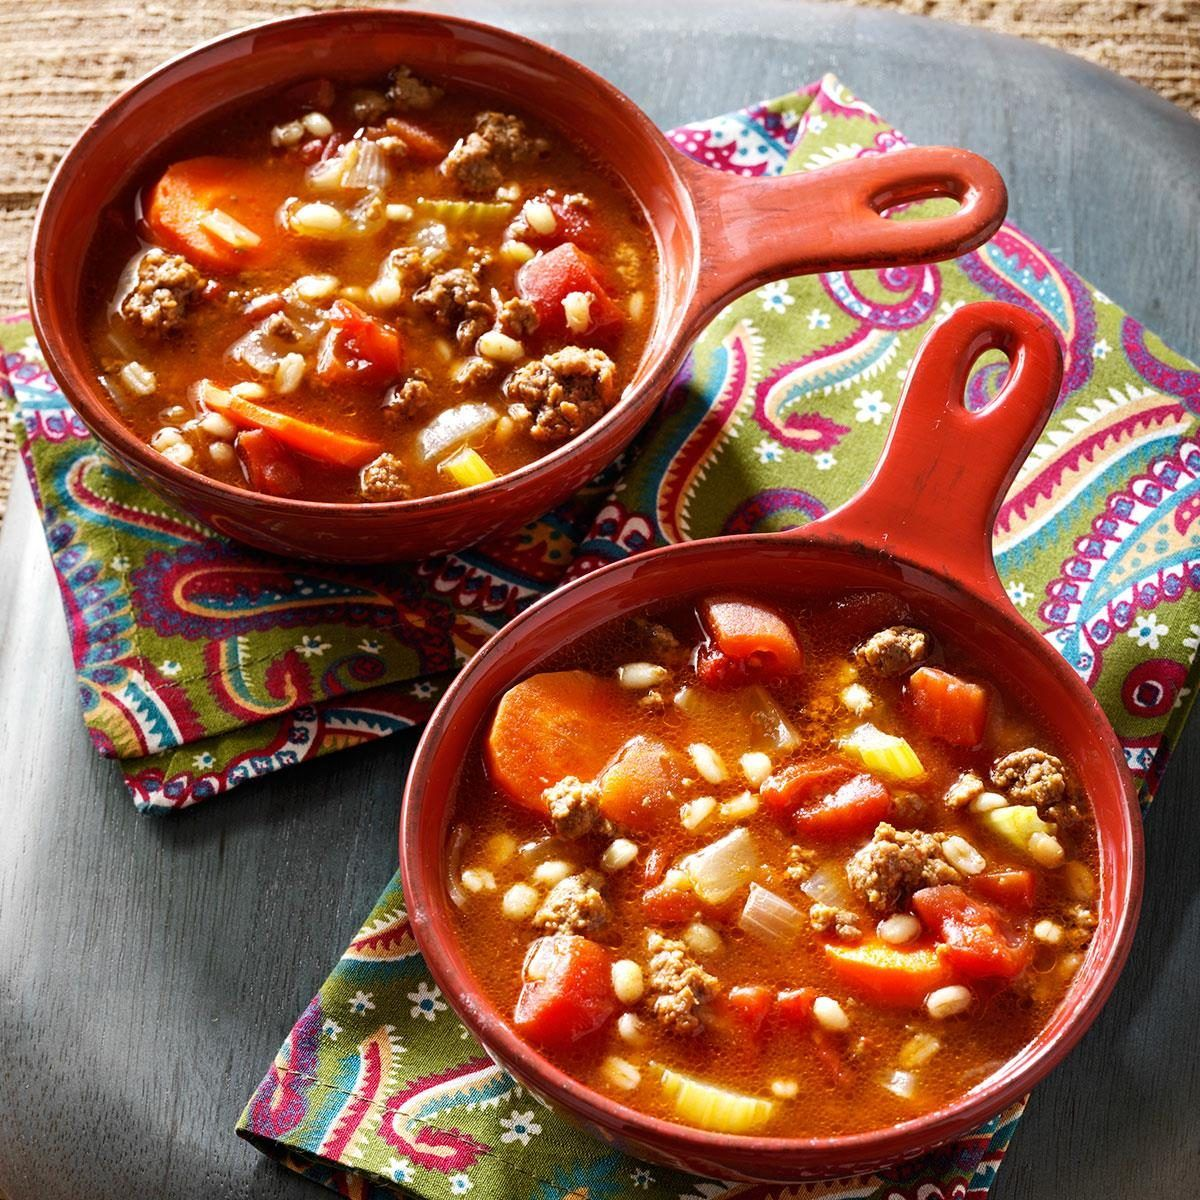 Ground Beef And Barley Soup Recipe In 2020 Barley Soup Beef Barley Soup Recipes